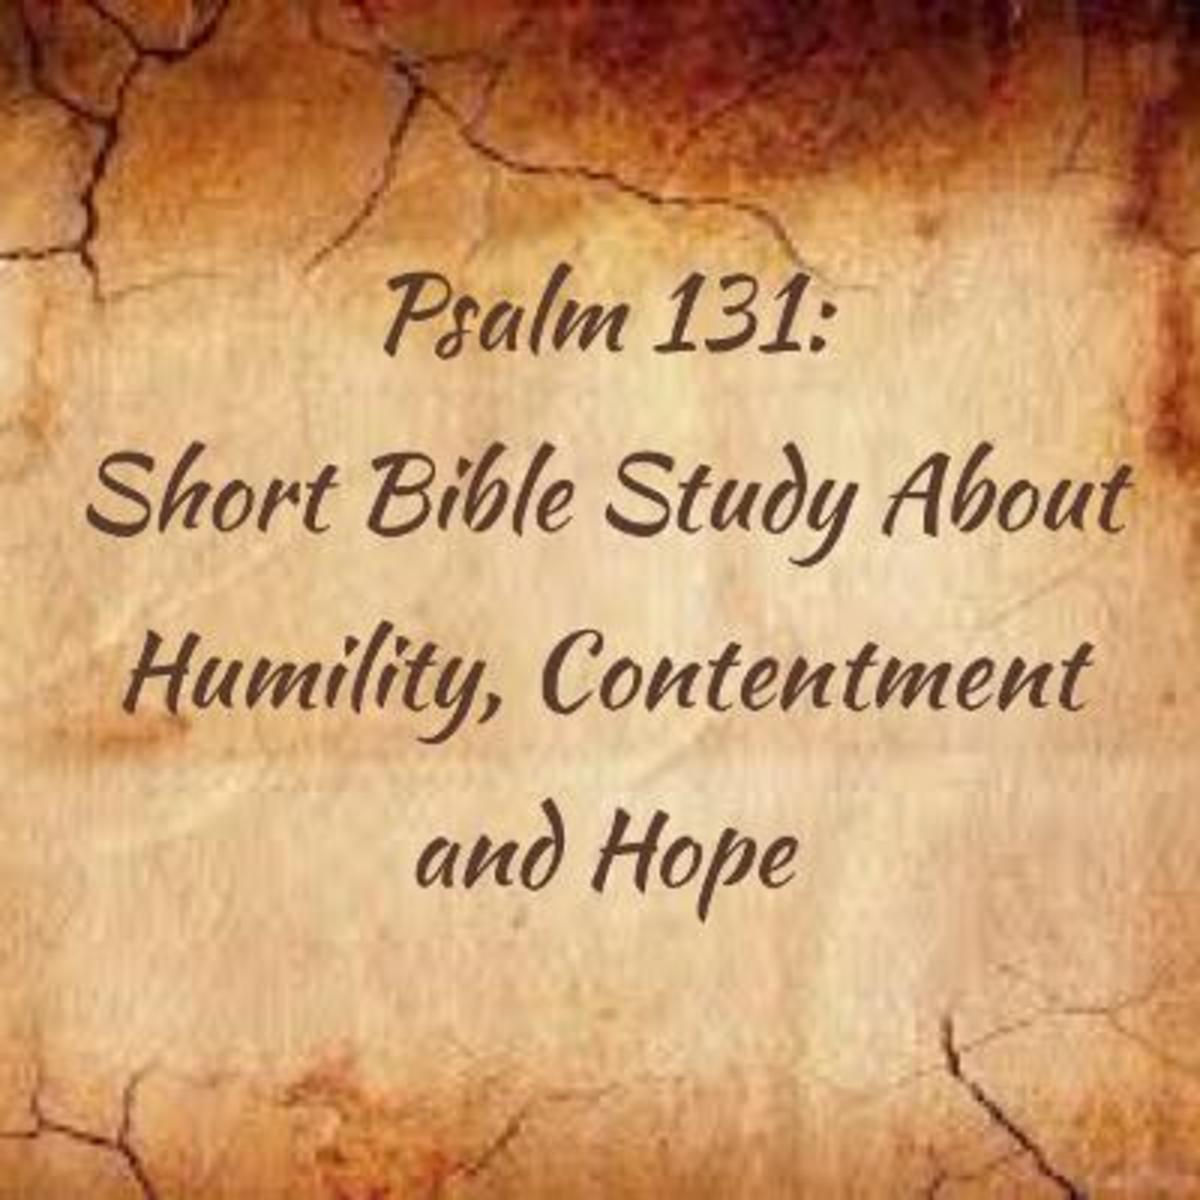 Psalm 131: Bible Study of Only Three Verses